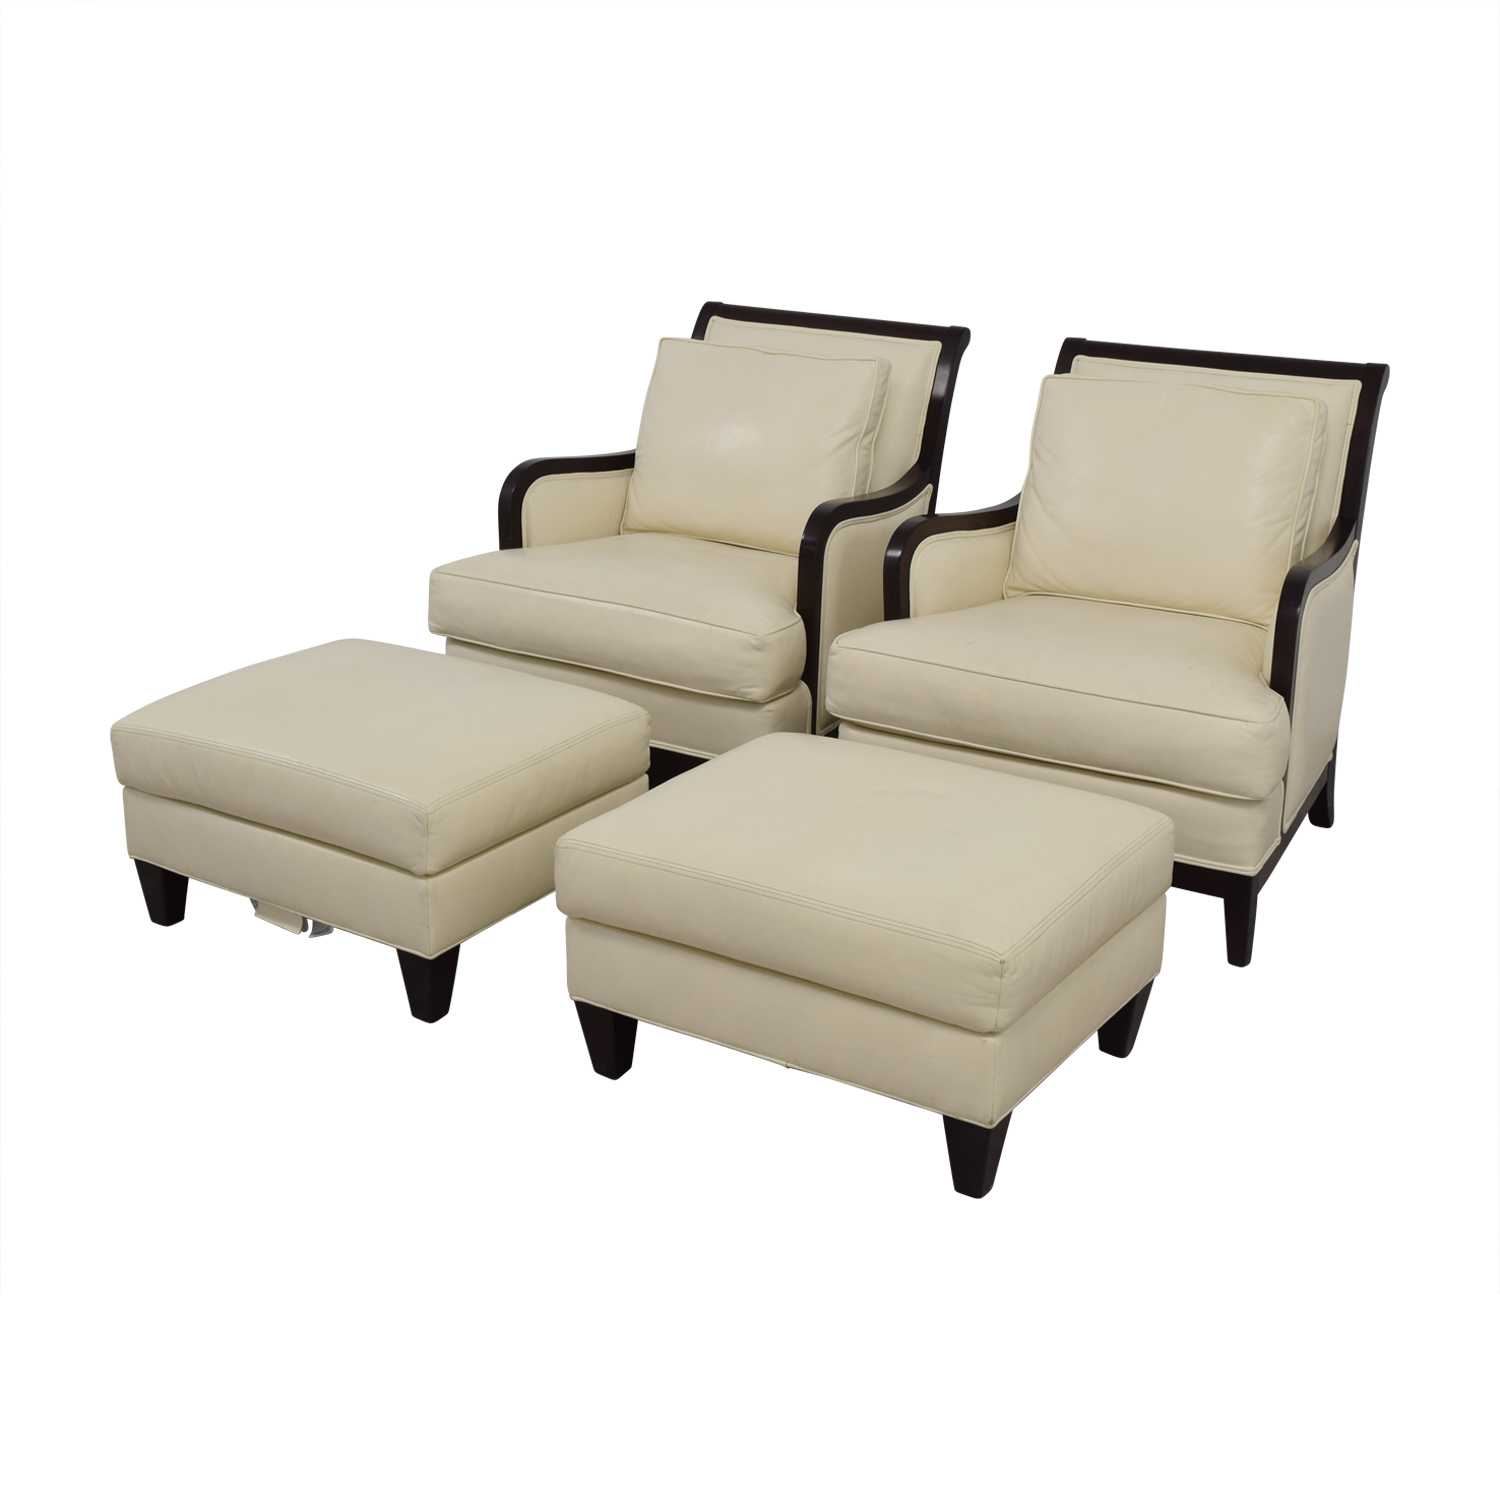 Ethan Allen Ethan Allen Palma Ivory Leather Chairs with Ottomans for sale